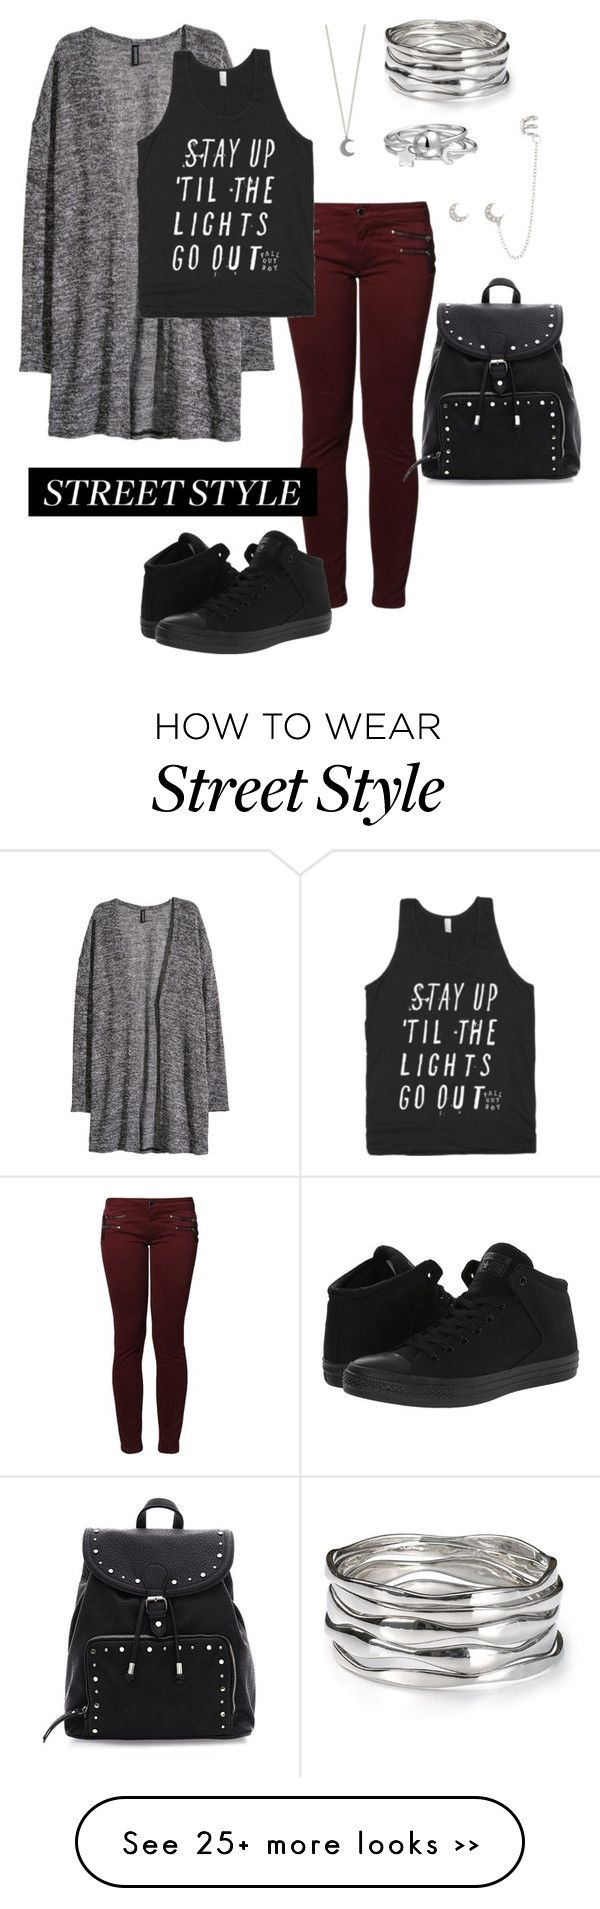 """Untitled #126"" by woahhorse on Polyvore featuring Kaporal, H&M, Converse, Aqua and Bling Jewelry"